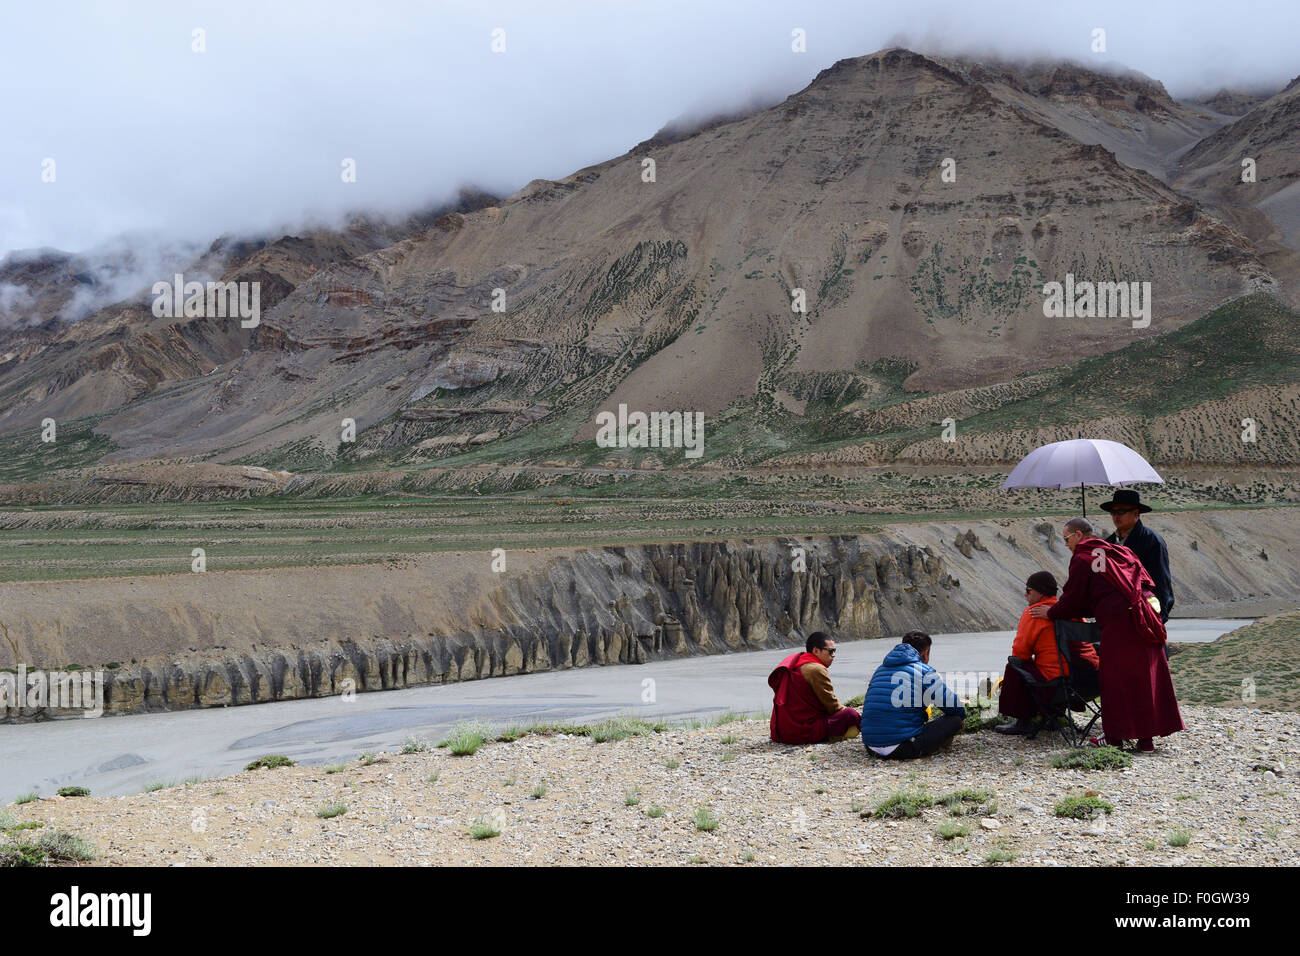 Buddhist Monks relaxing in Himalayas Mountains near frozen himalaya river in Leh Ladakh India - Stock Image